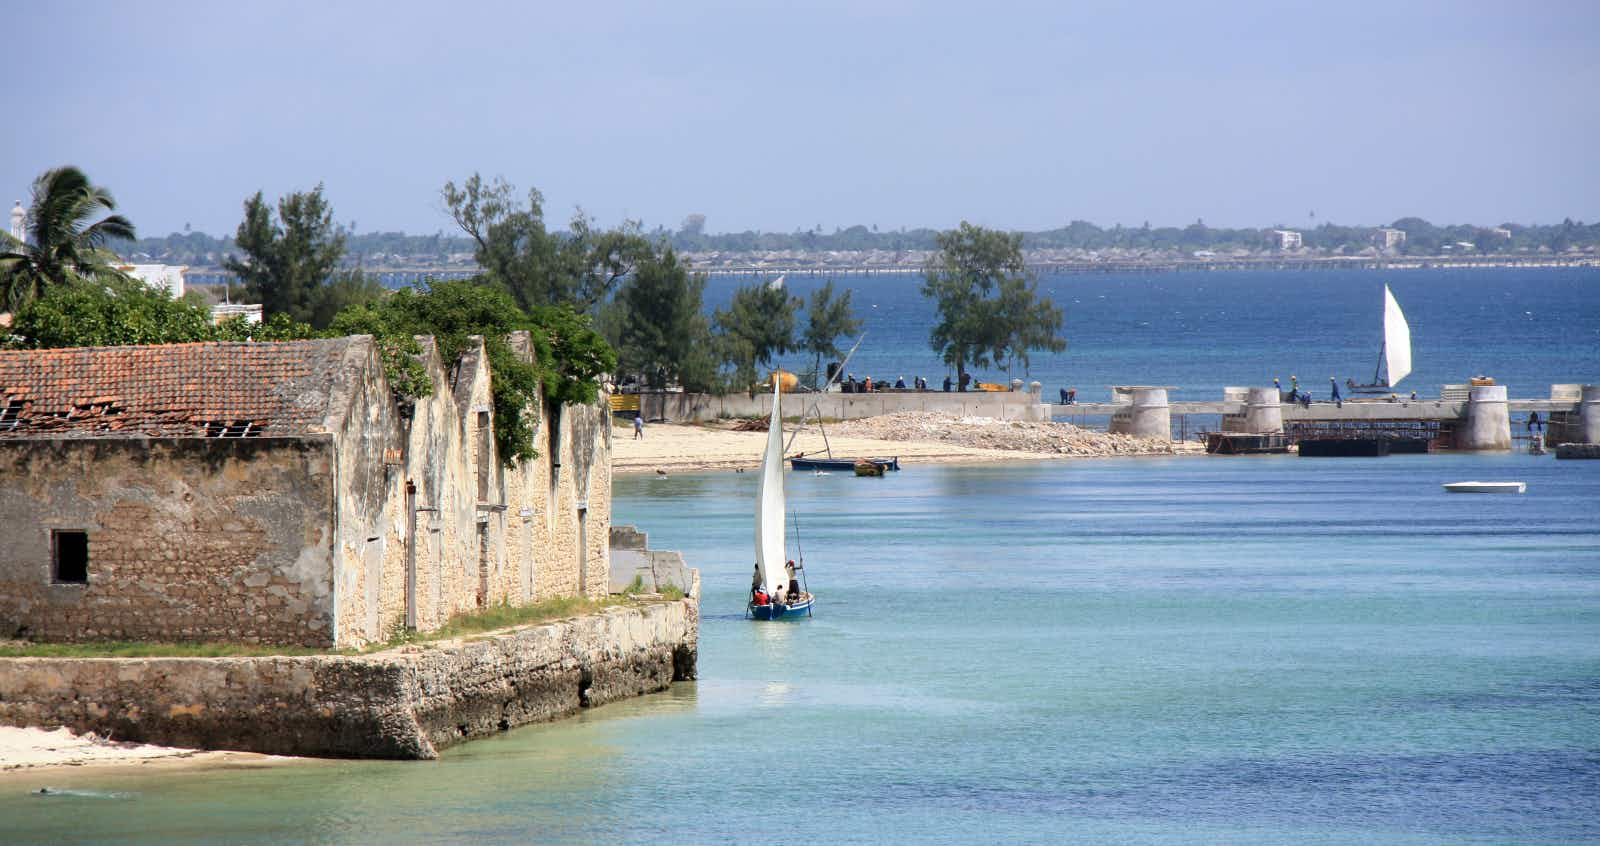 Mozambique: a tale of two capitals